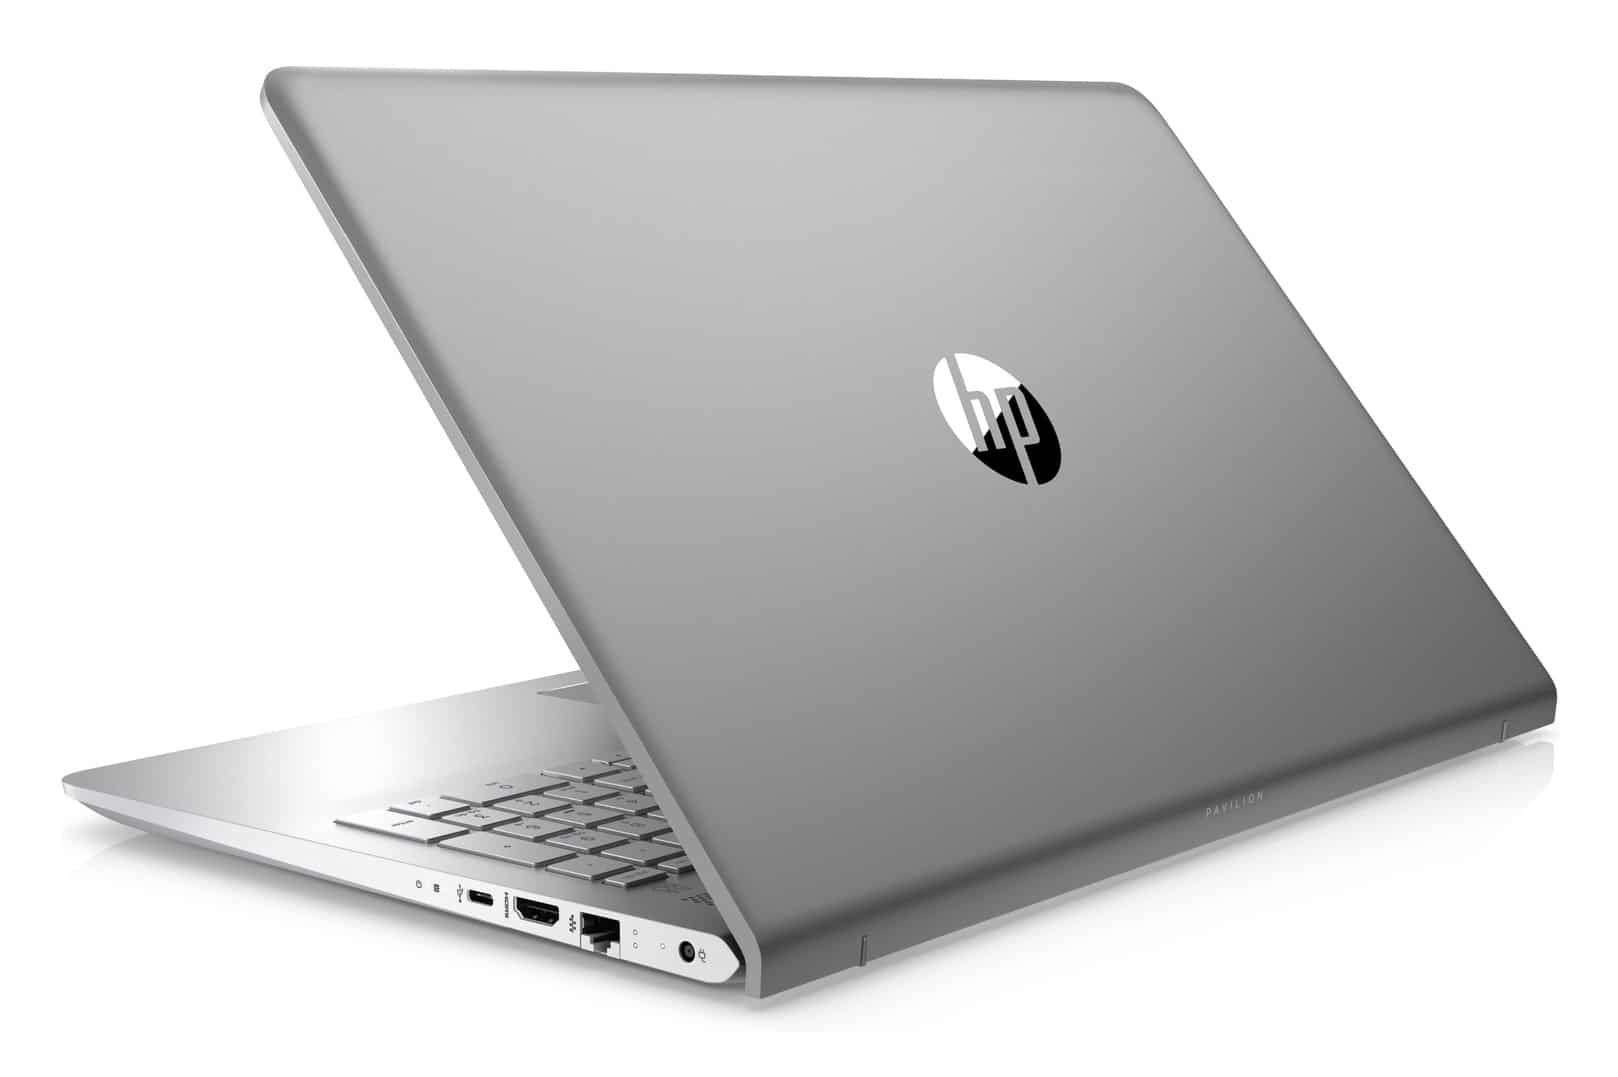 HP Pavilion 15-cc522nf, ultrabook 15 pouces SSD512 Full i7 940MX à 847€